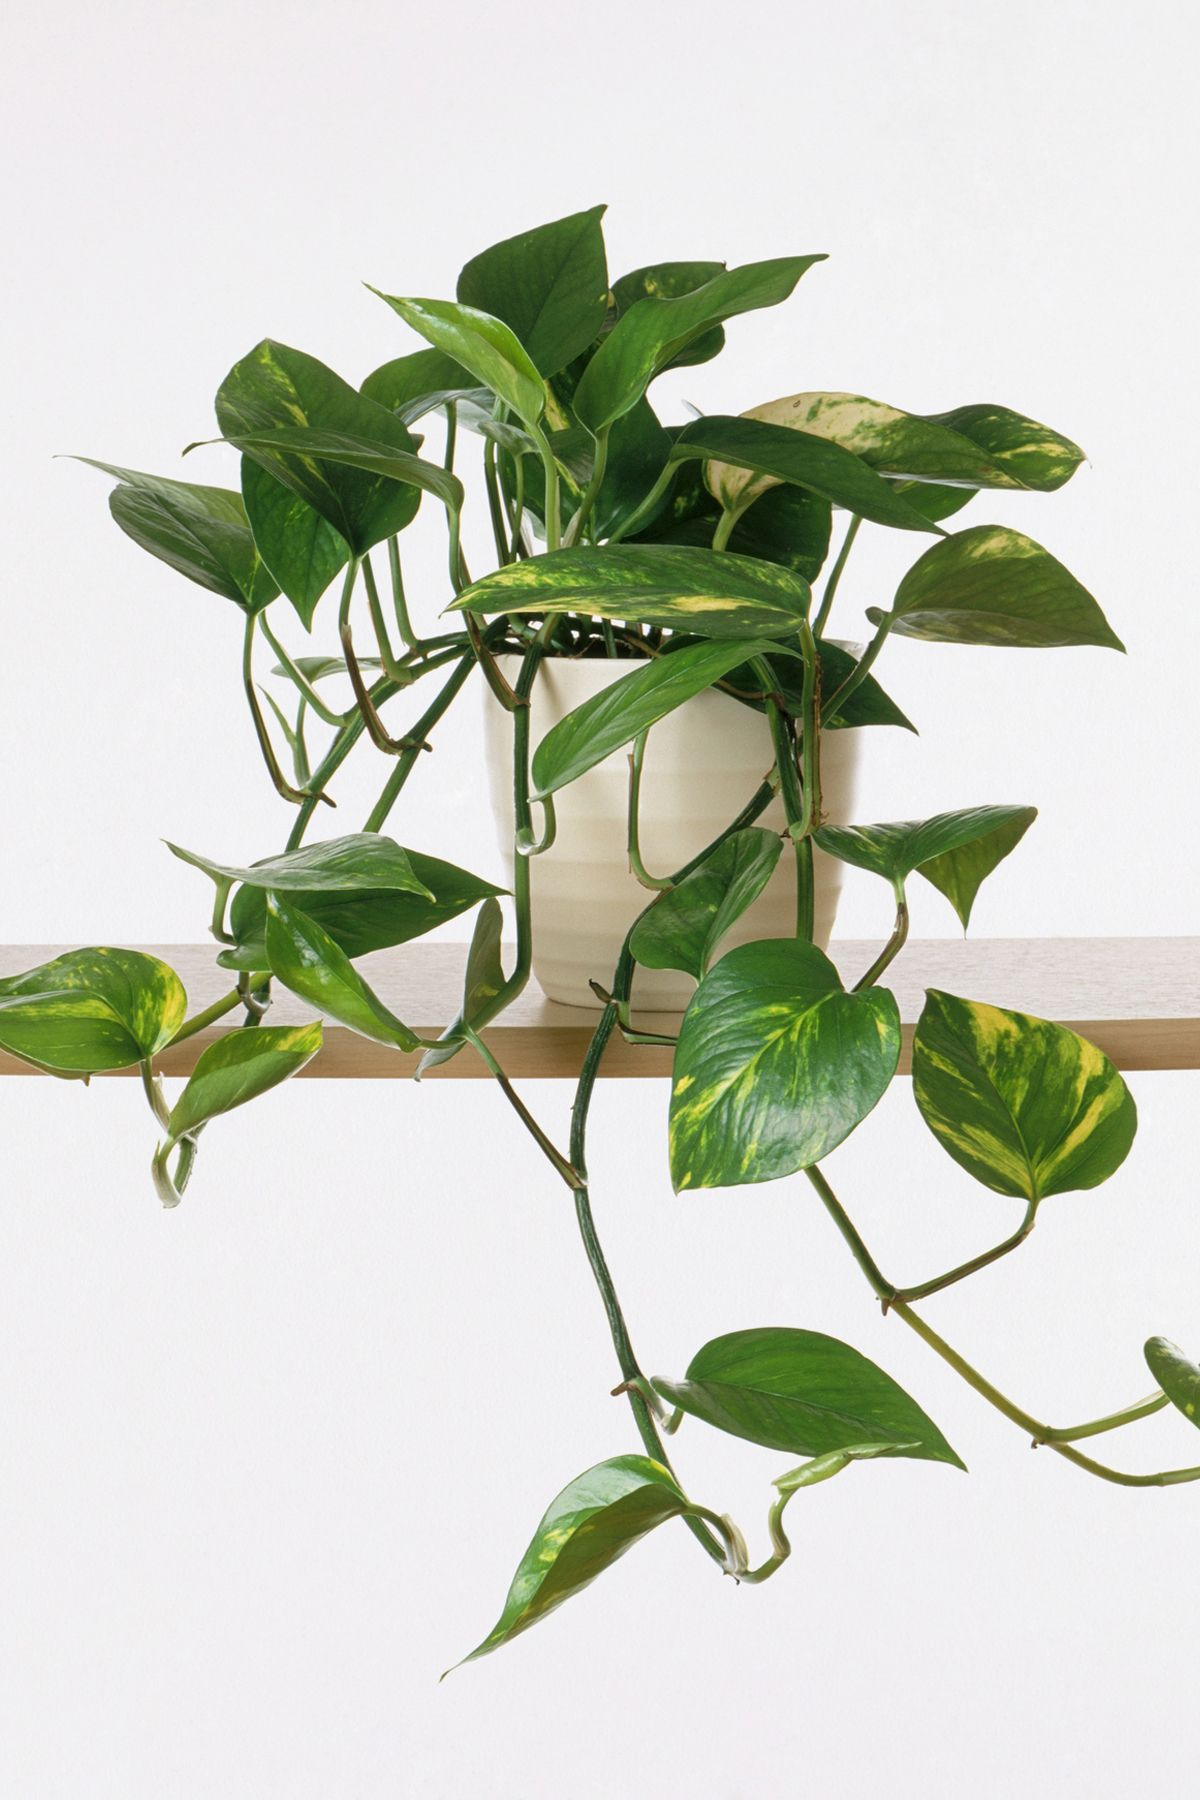 Epipremnum aureum 'Marble Queen' (Devil's ivy) in plant pot on shelf